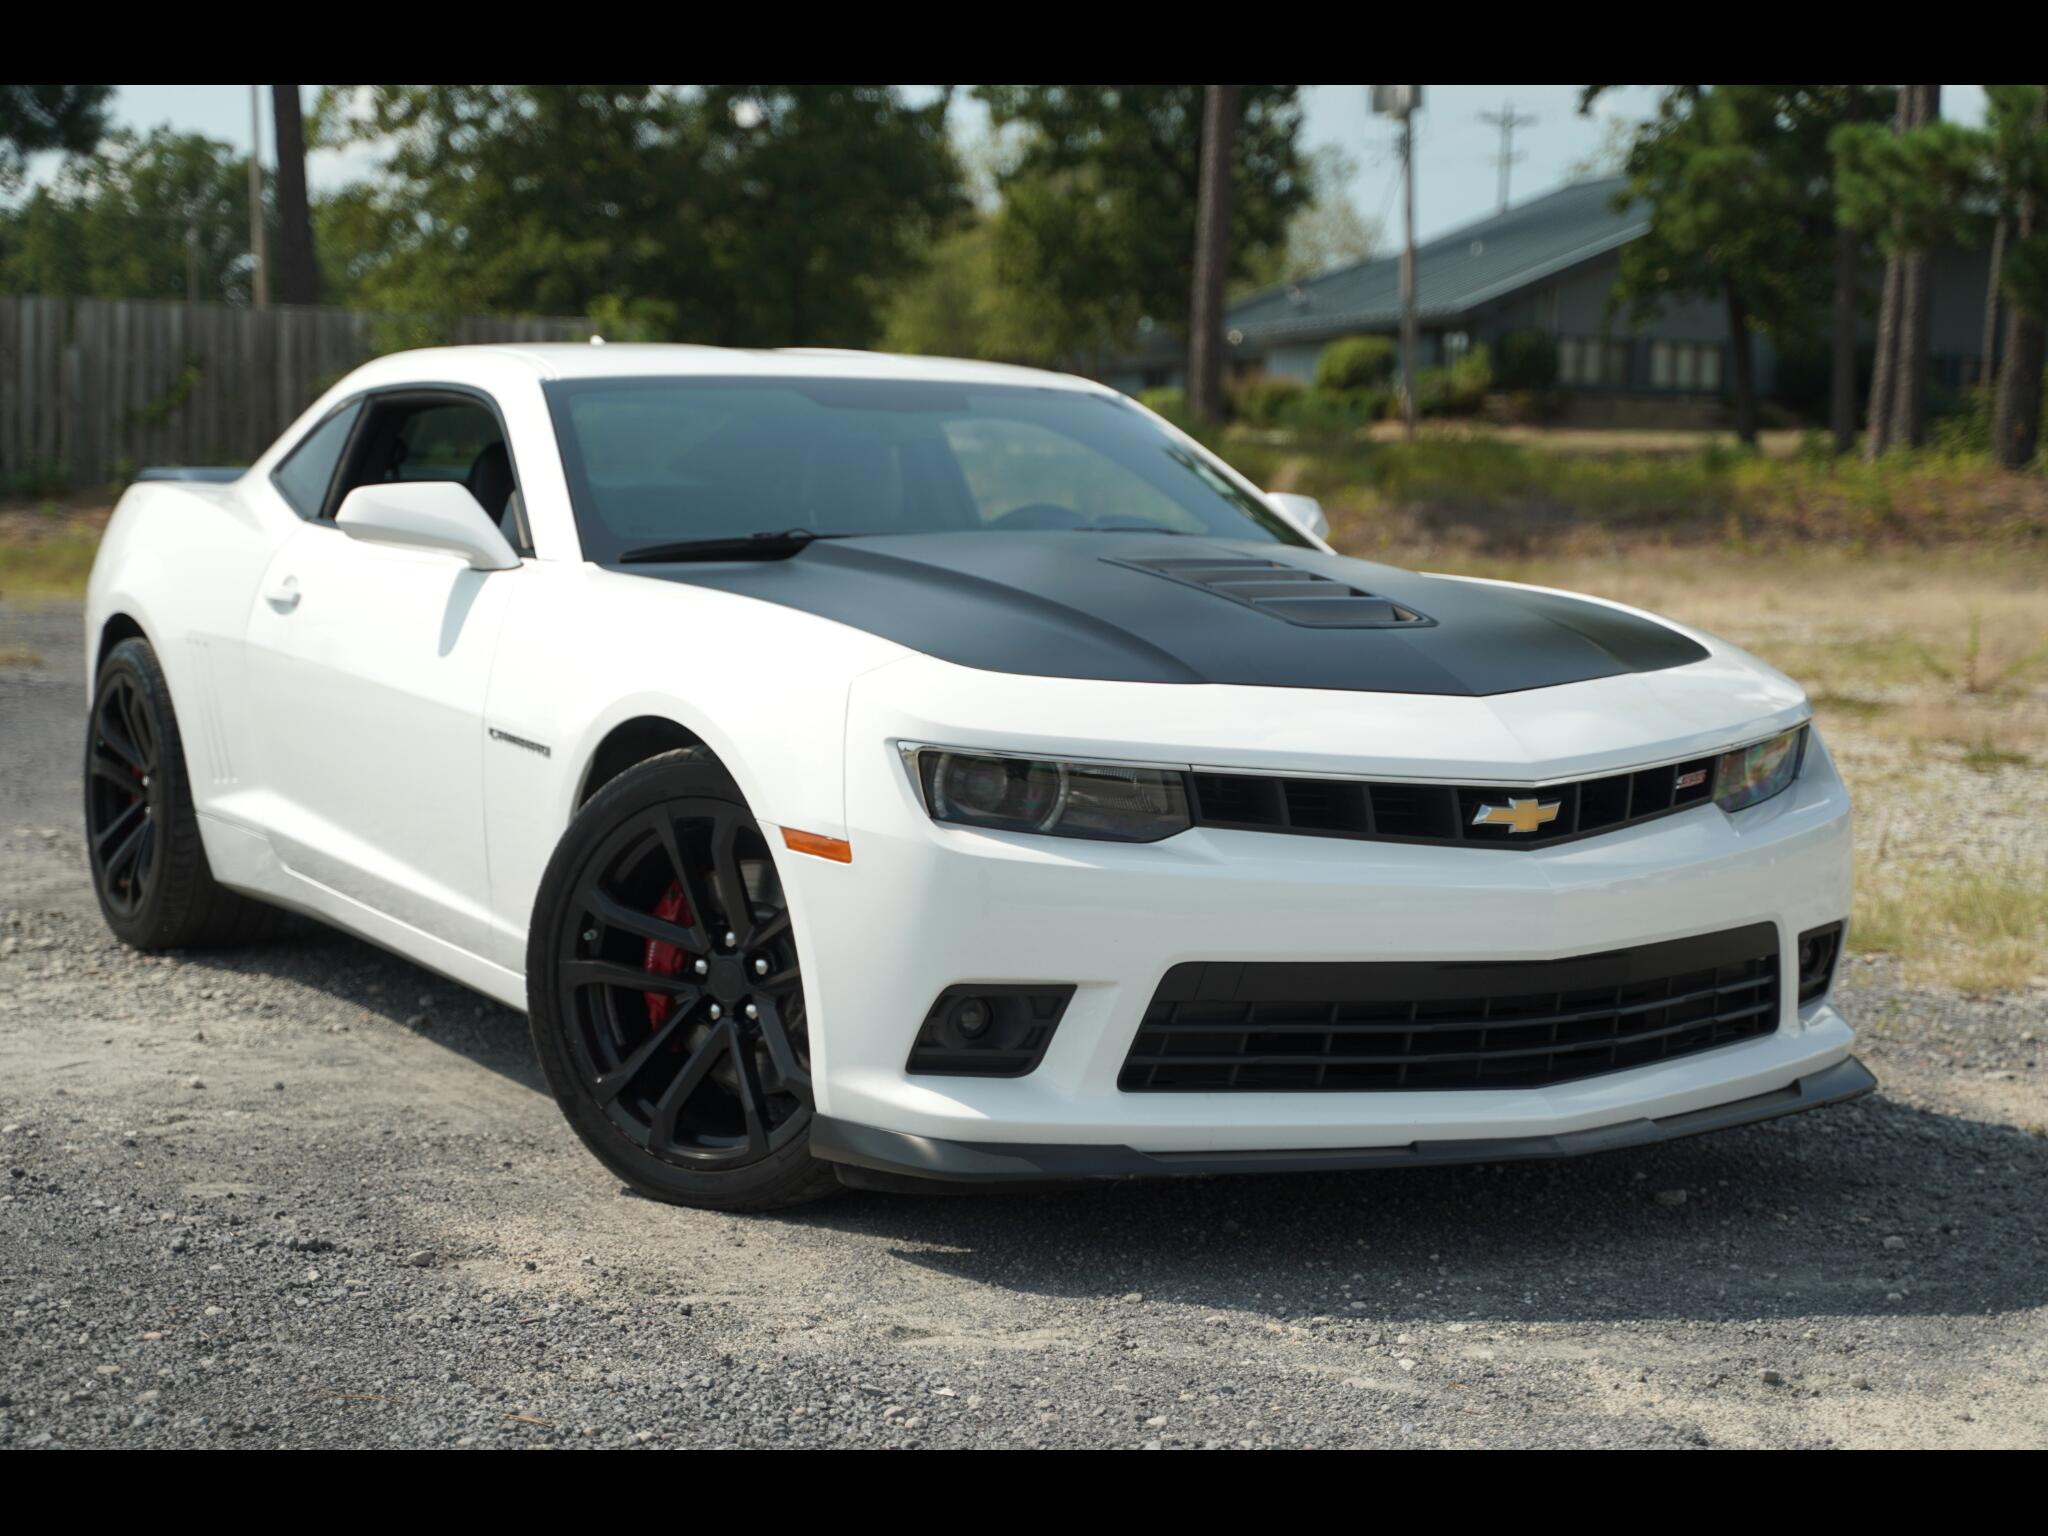 2015 Chevrolet Camaro 1LE SS Coupe Loaded